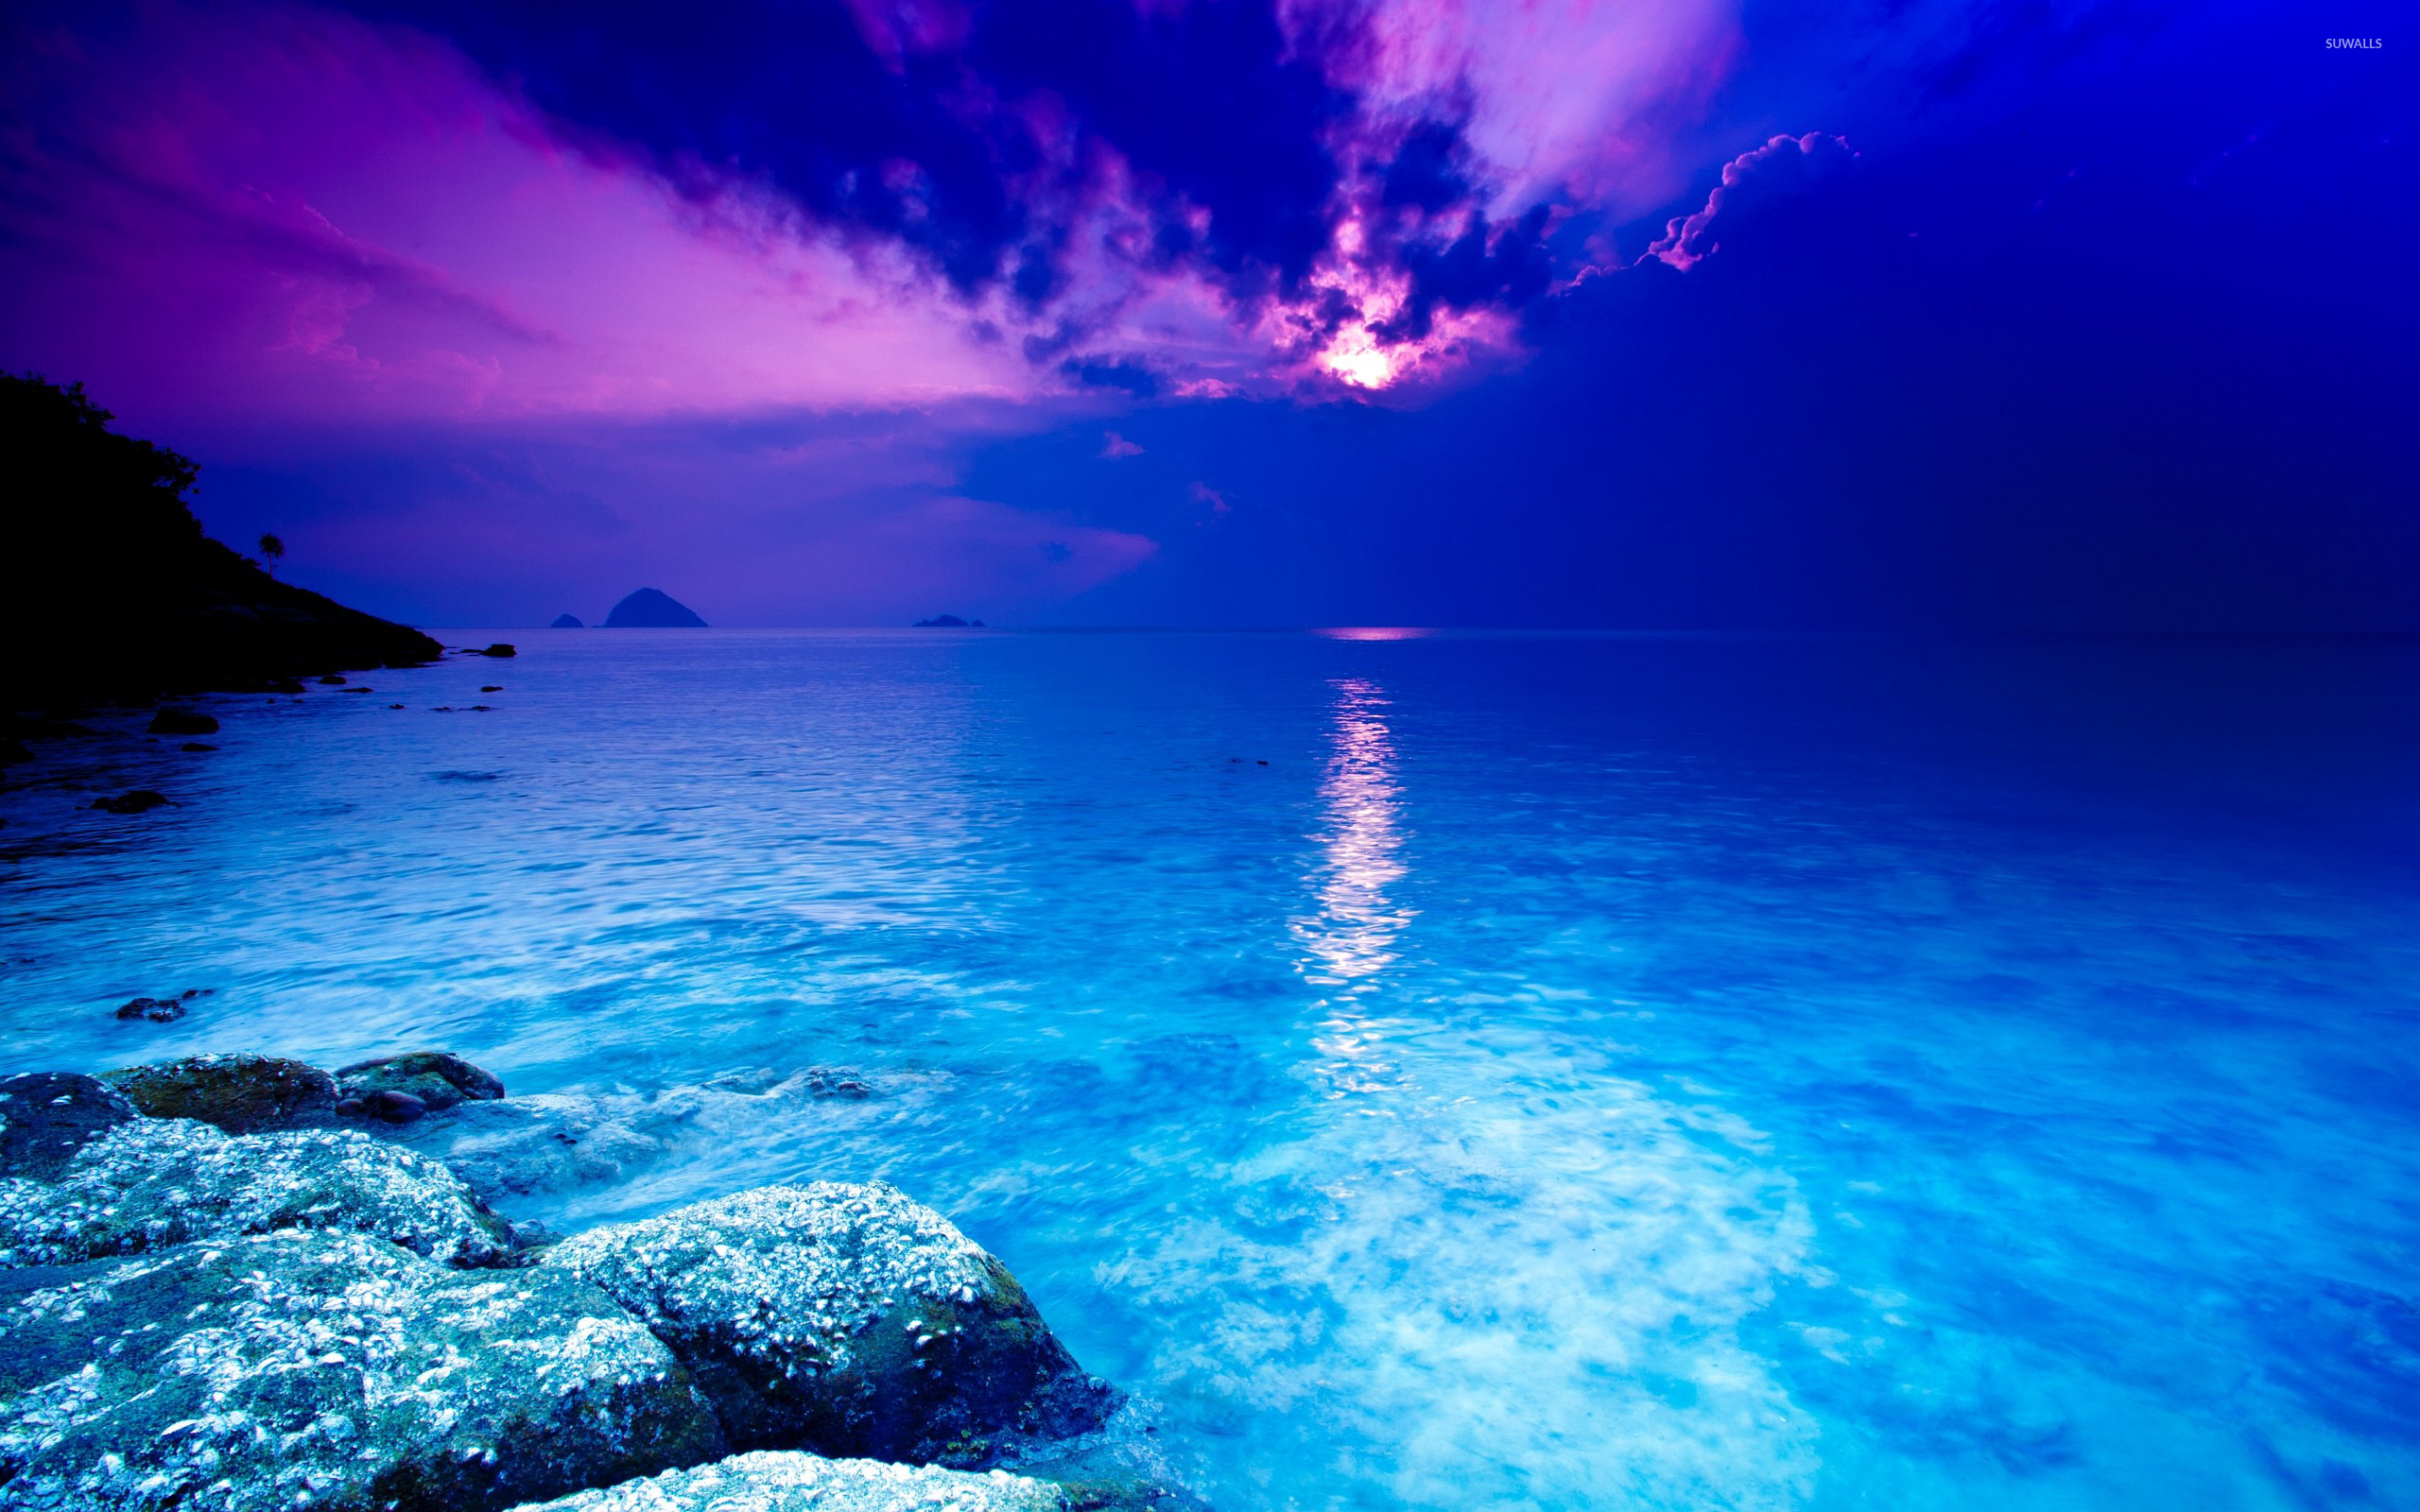 blue sea wallpaper - beach wallpapers - #22407